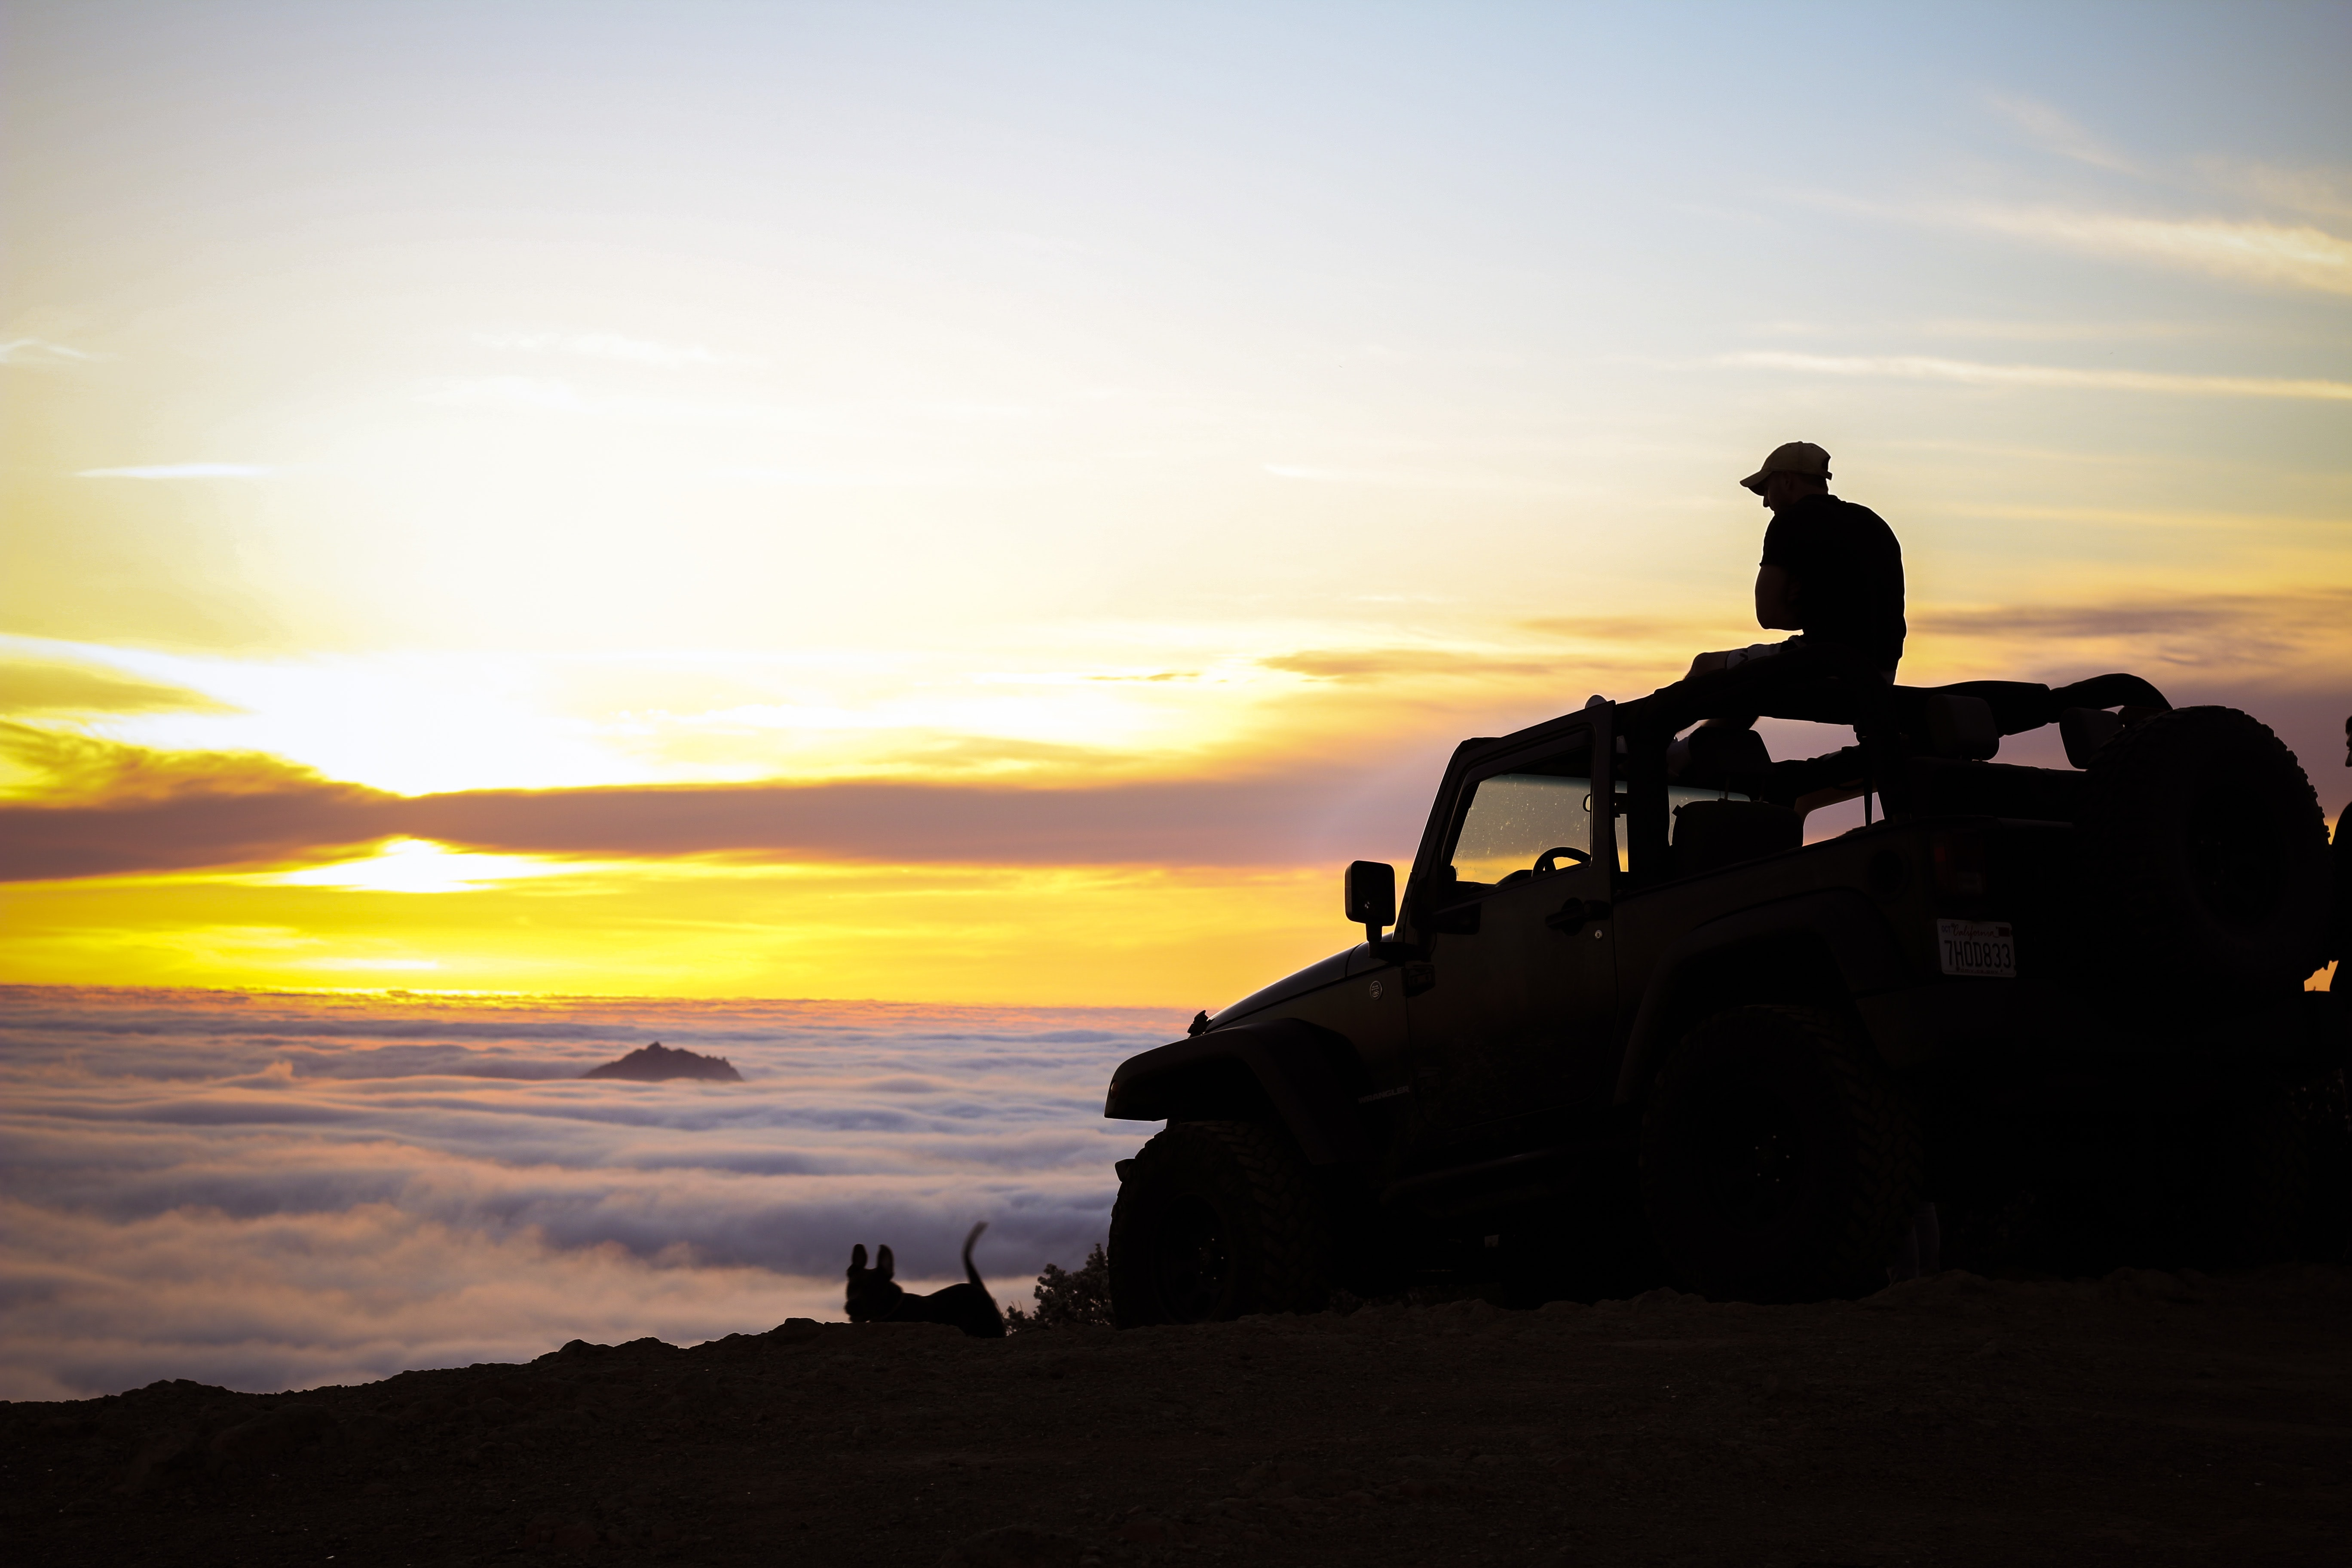 A silhouette of a person sitting on a jeep and watching the sunset above clouds